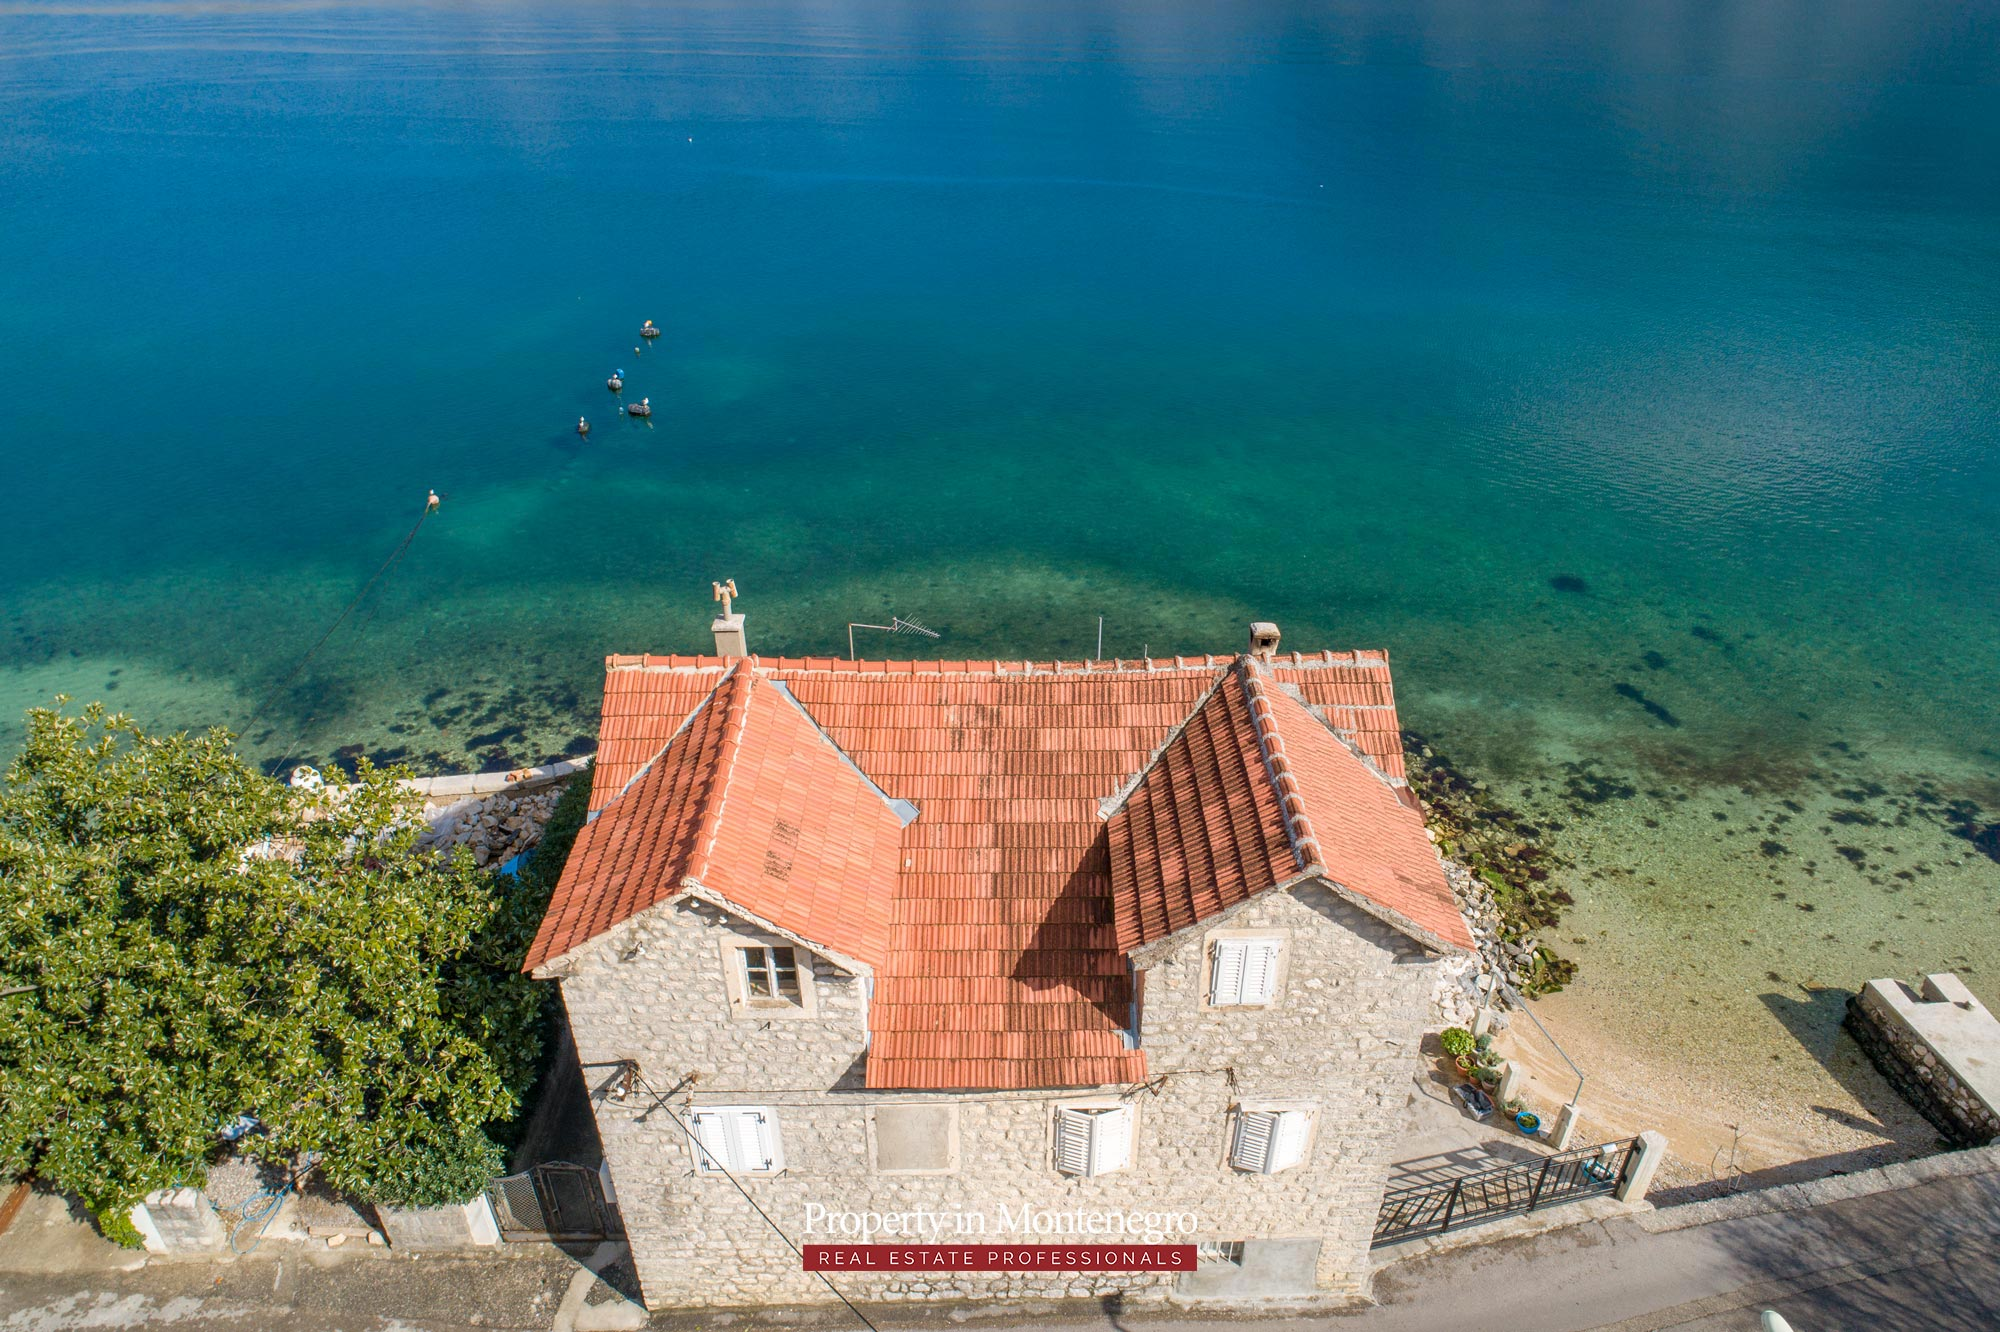 Waterfront-stone-house-for-sale-in-Kotor (20).jpg